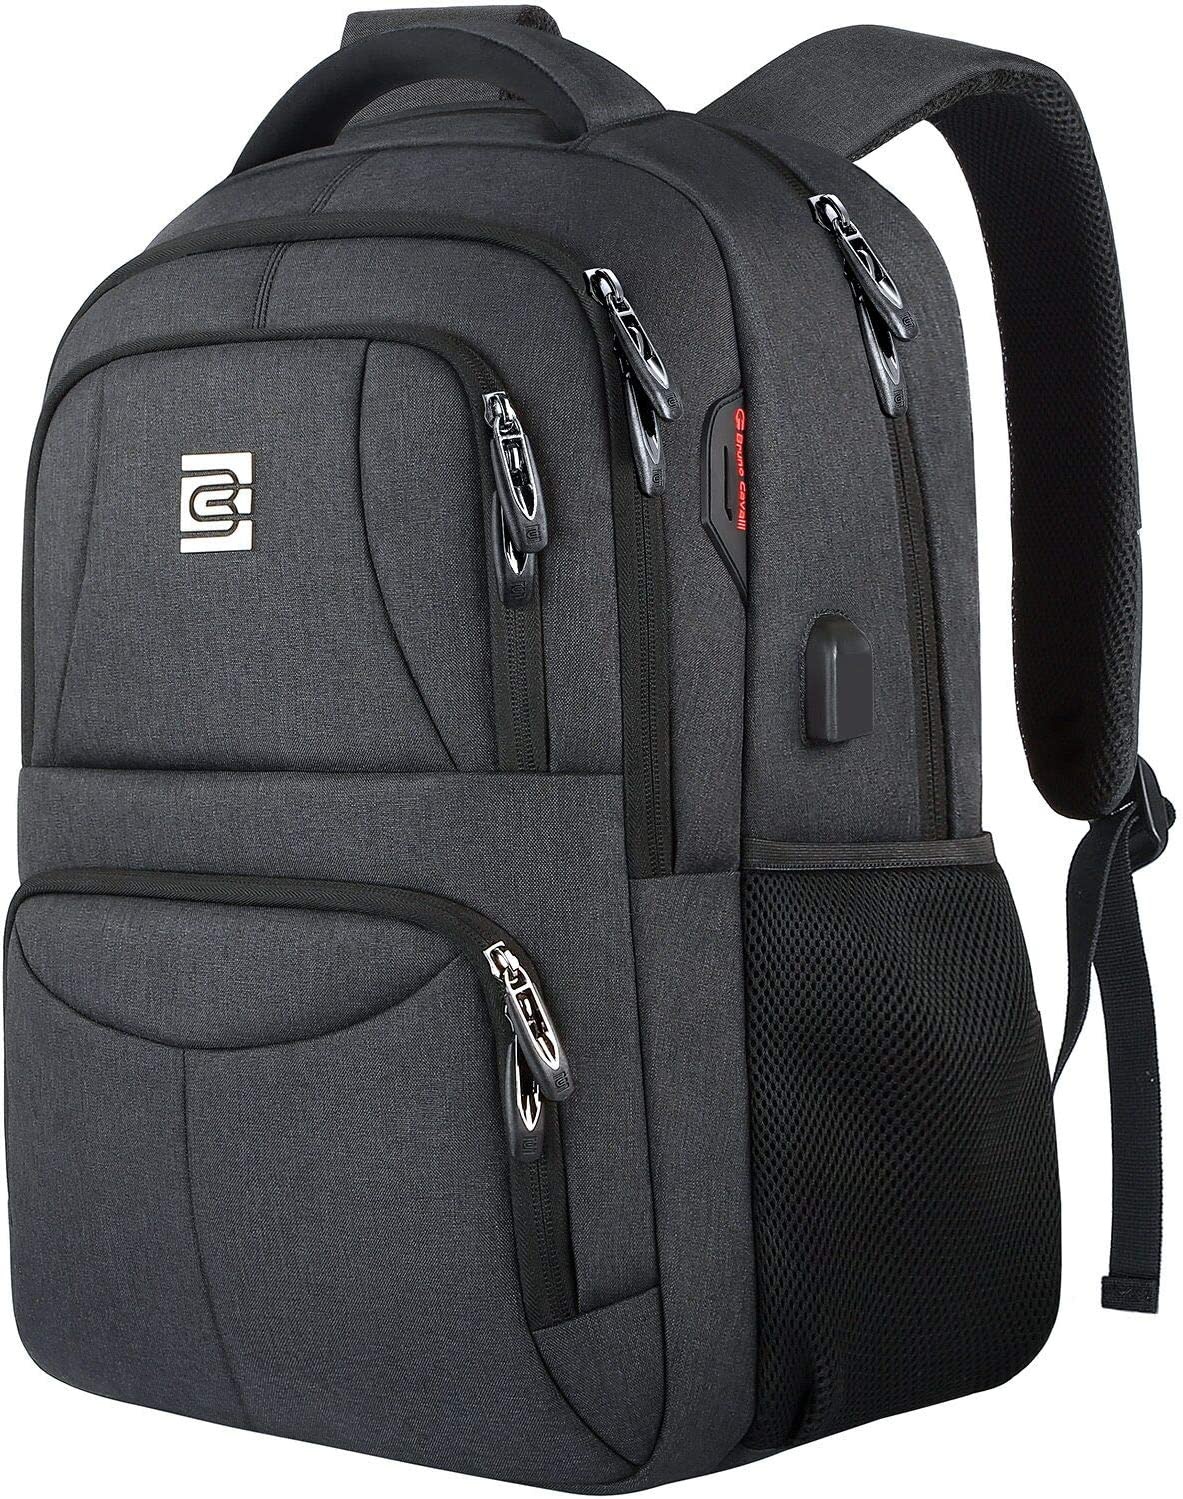 Gift Fashion Nylon Casual Business Men Laptop Bag Computer Backpack Light Lady Anti-Theft Travel Backpack